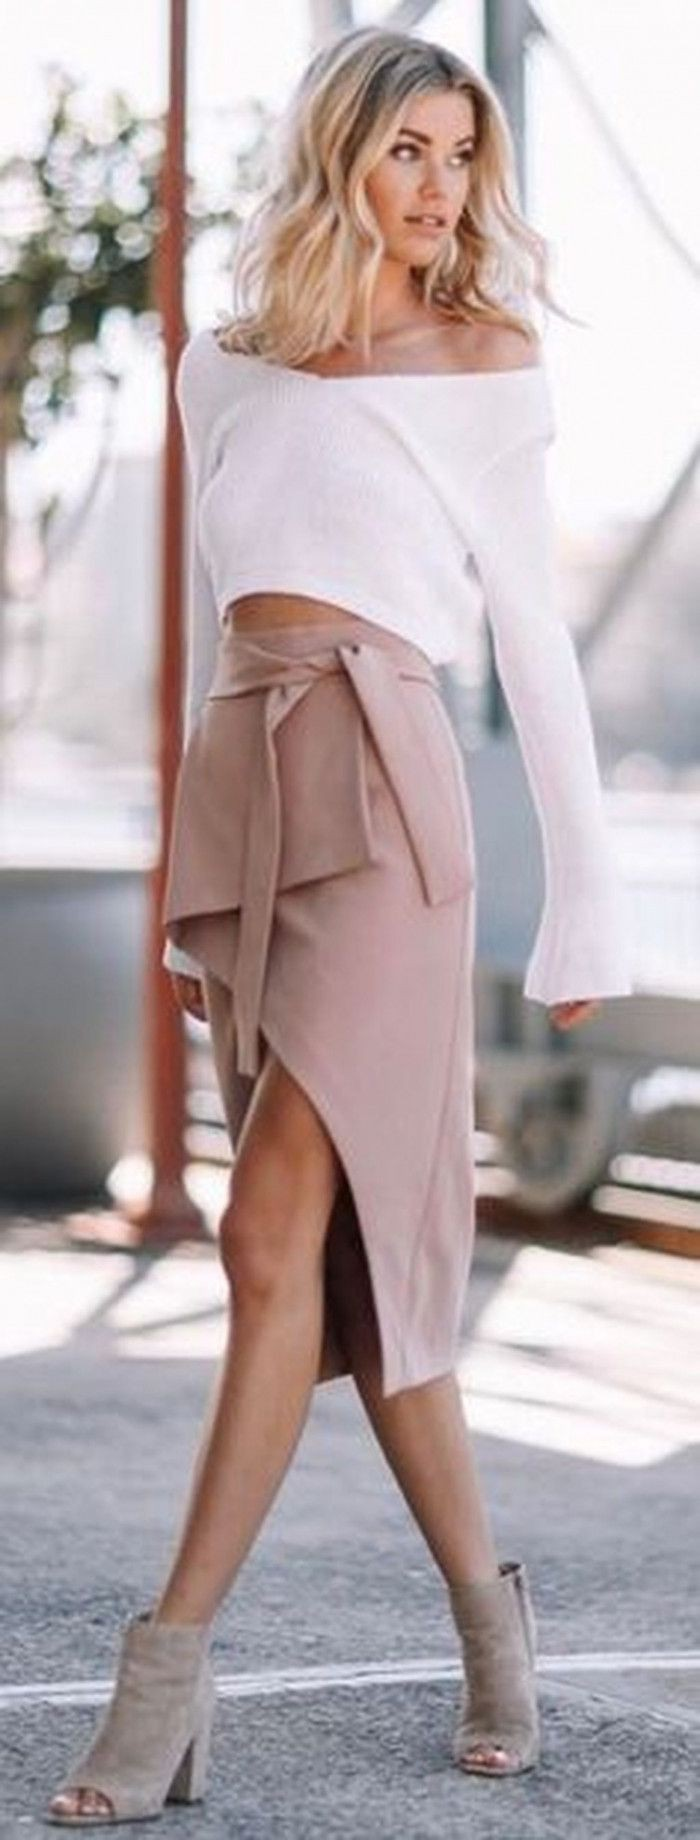 White and pink style outfit with pencil skirt, crop top, jacket